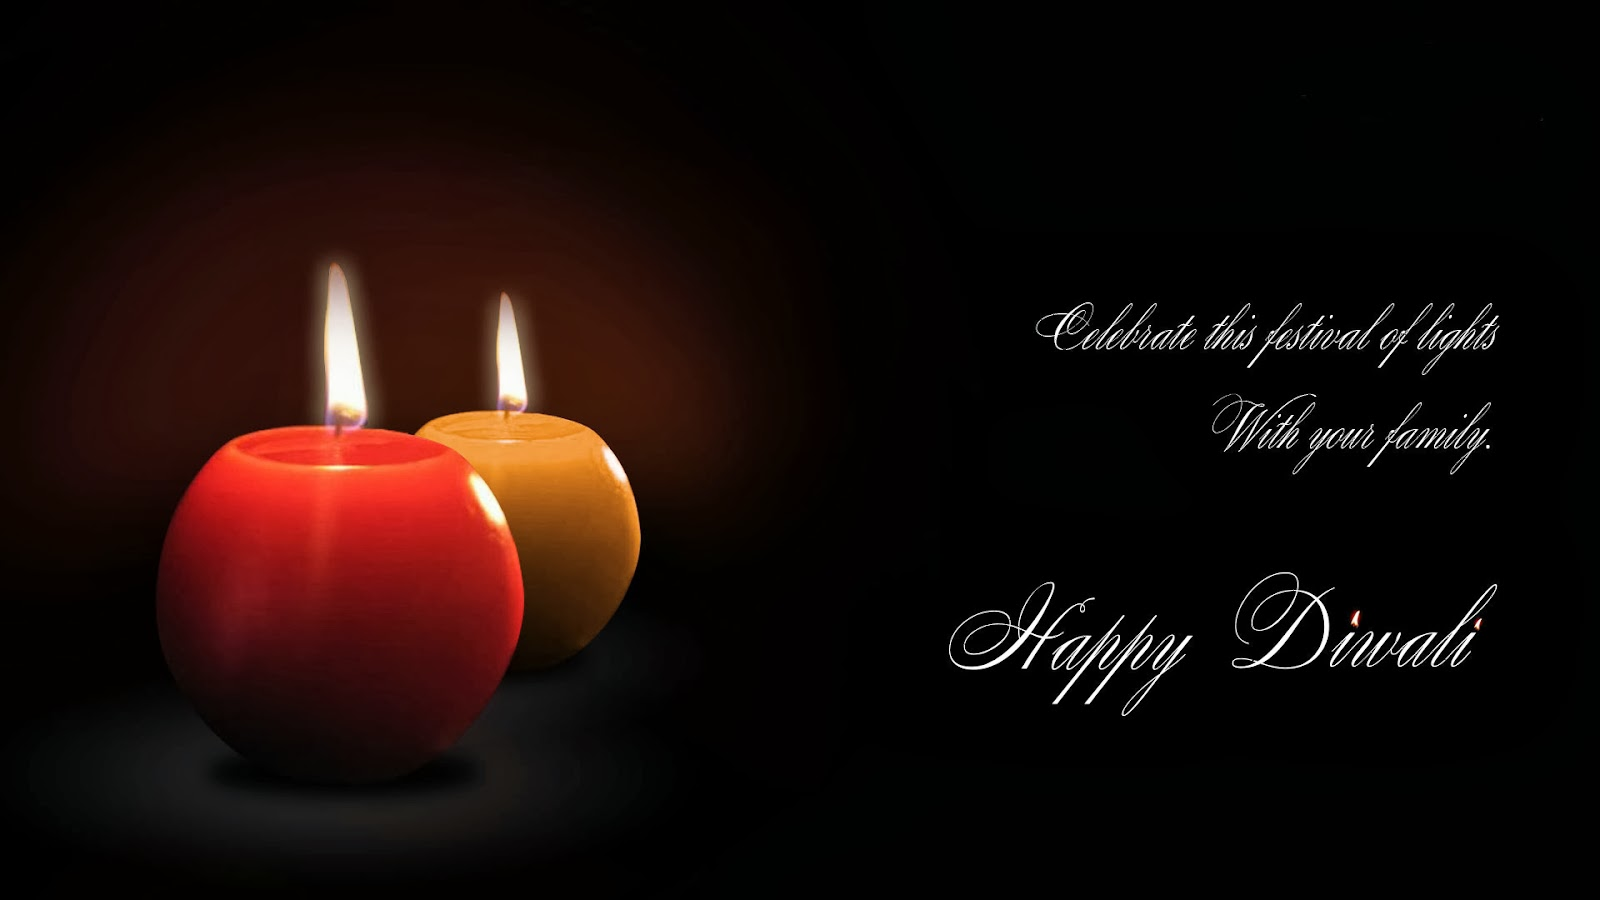 Download Wallpaper Love Diwali - happy-diwali-2013-hd-greeting-wallpaper  Picture_67726.jpeg